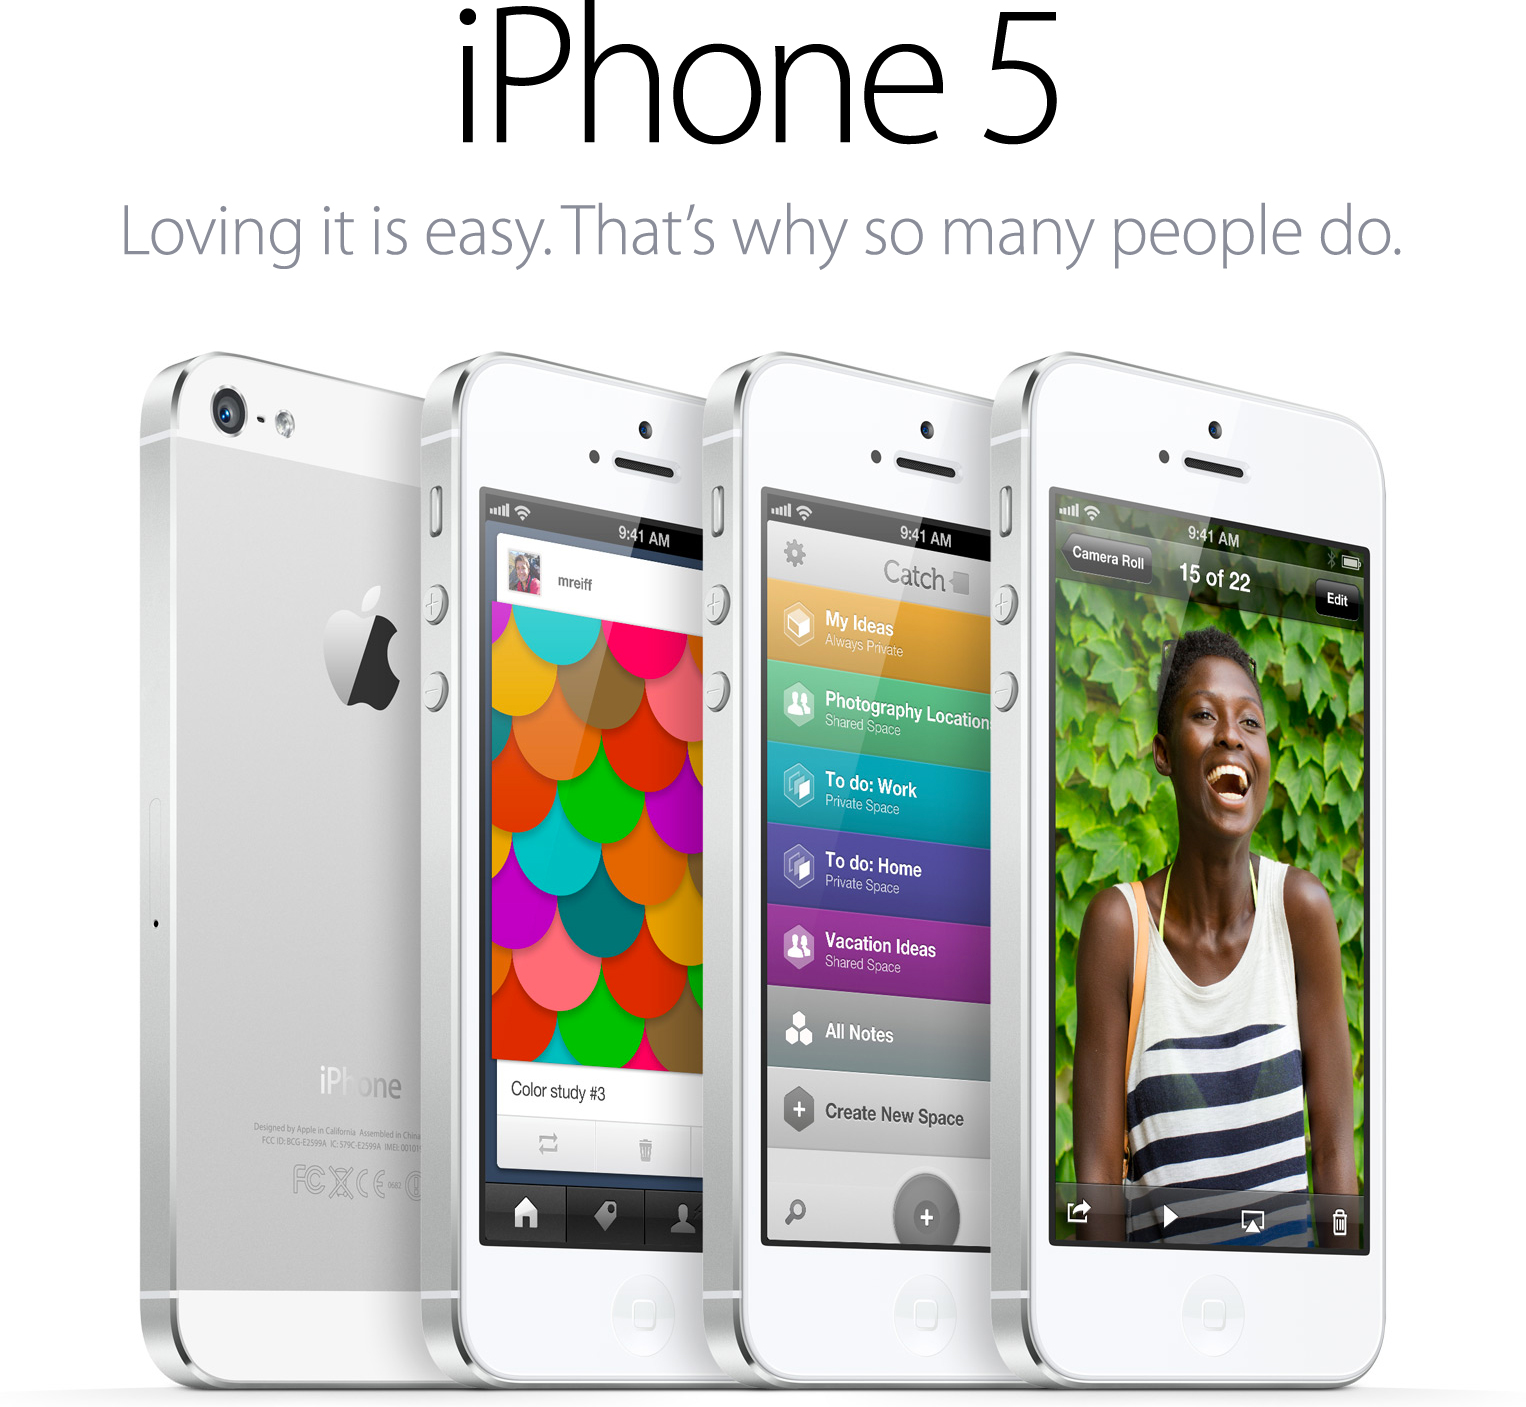 Novo slogan do iPhone 5